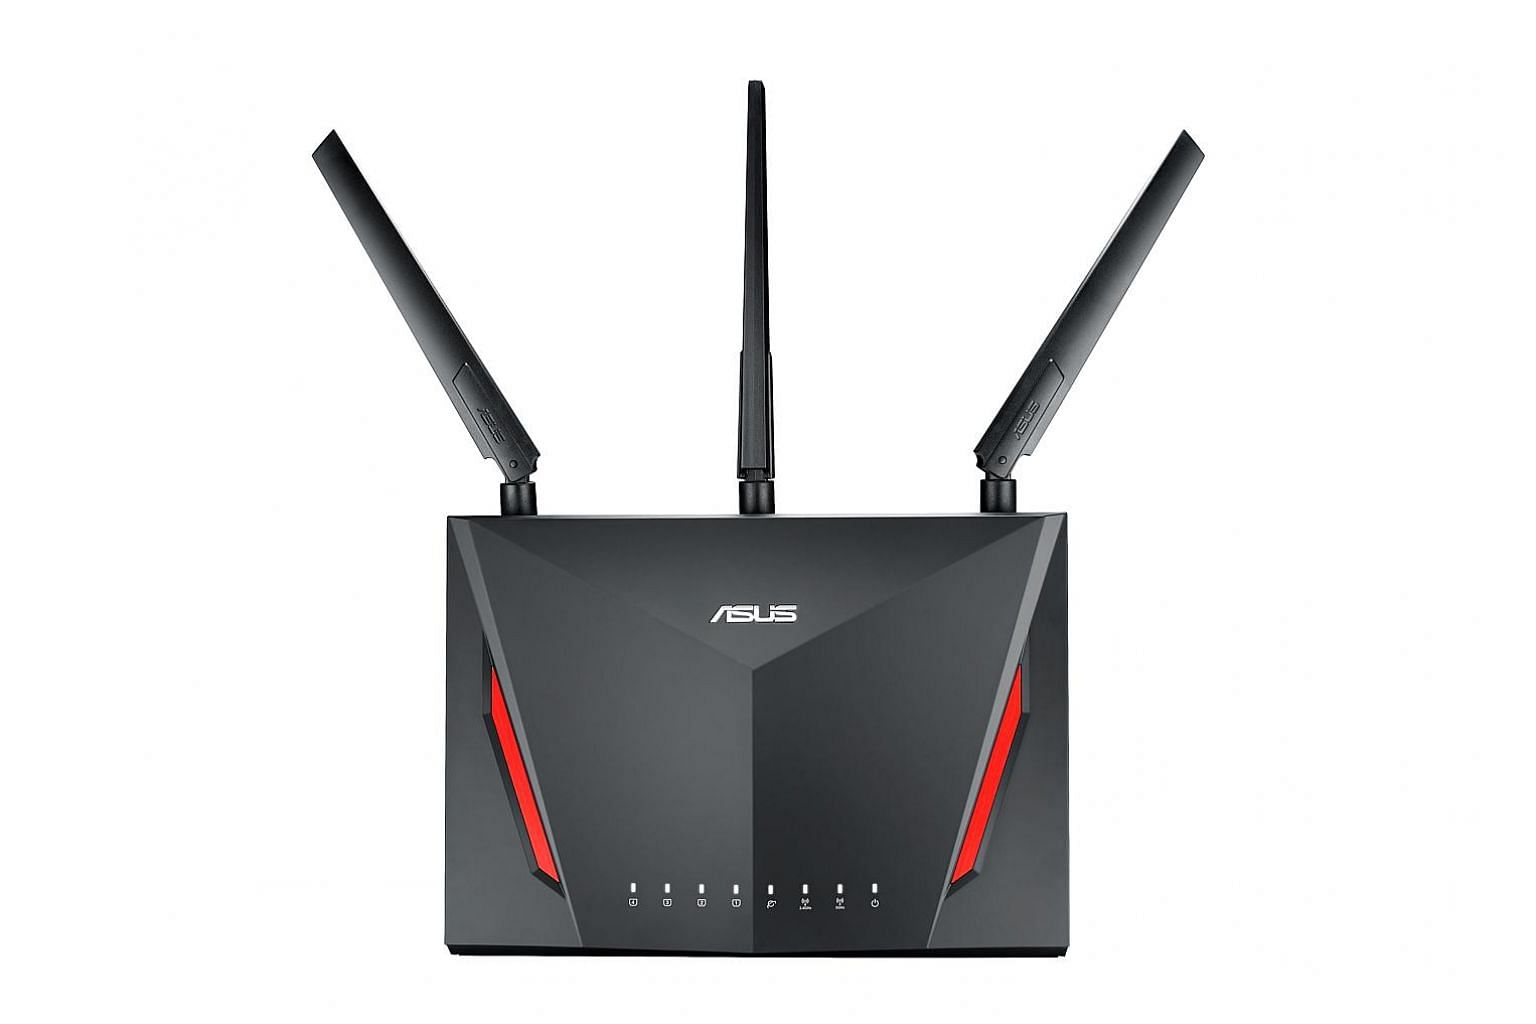 The AC86U dual-band router is bundled with features like free access to the WTFast private network that can improve network latency for popular online games, as well as software to detect malware, block infected devices from accessing the Internet, a